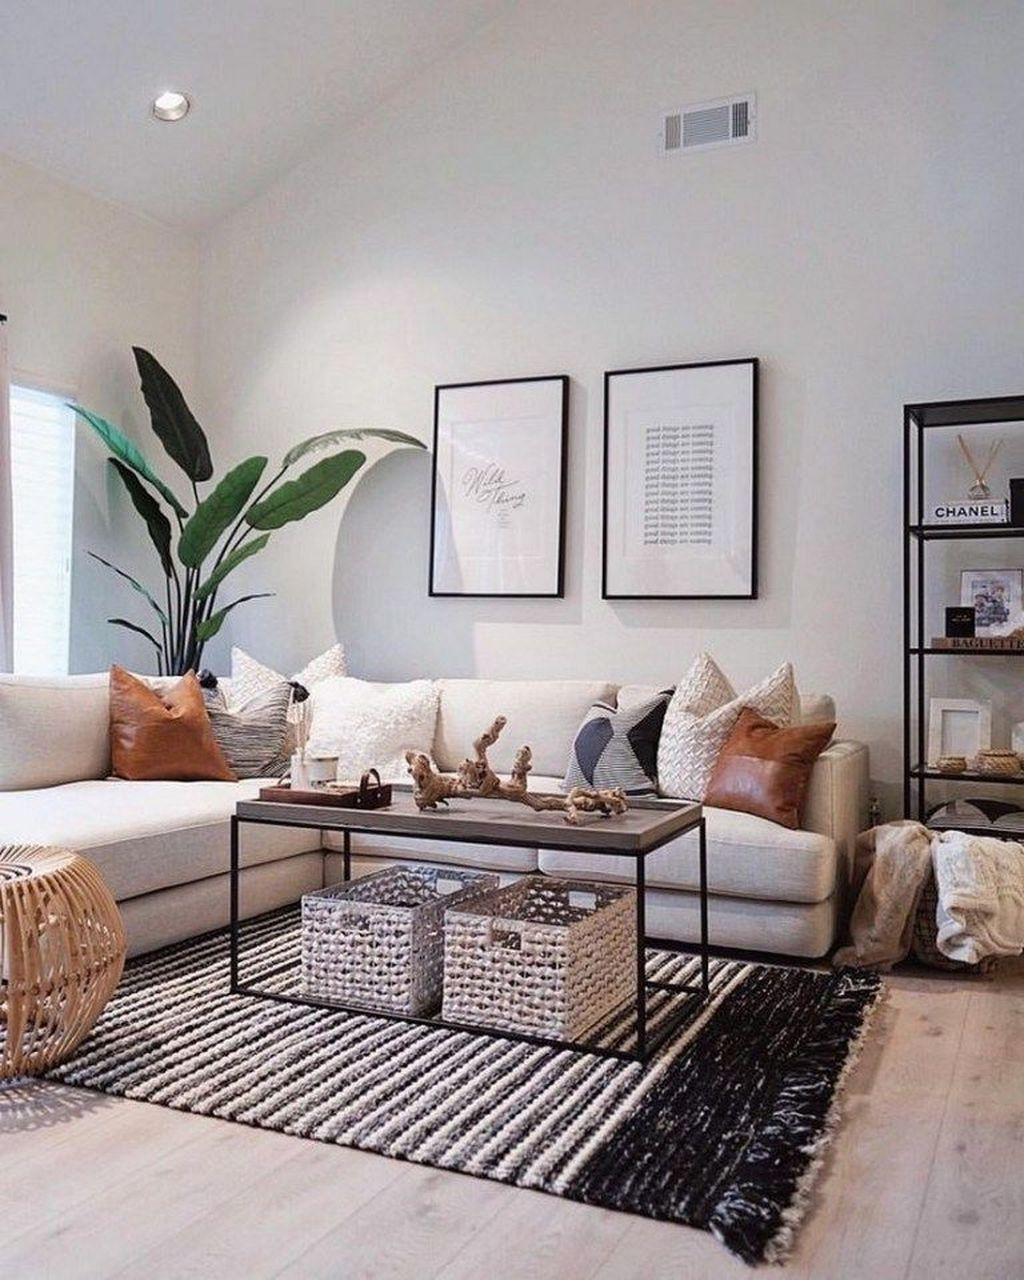 45 Luxury Apartment Living Room Decorating Ideas On A Budget To Try Small Apartment Decorating Living Room Living Room Decor Apartment Living Room Decor Modern